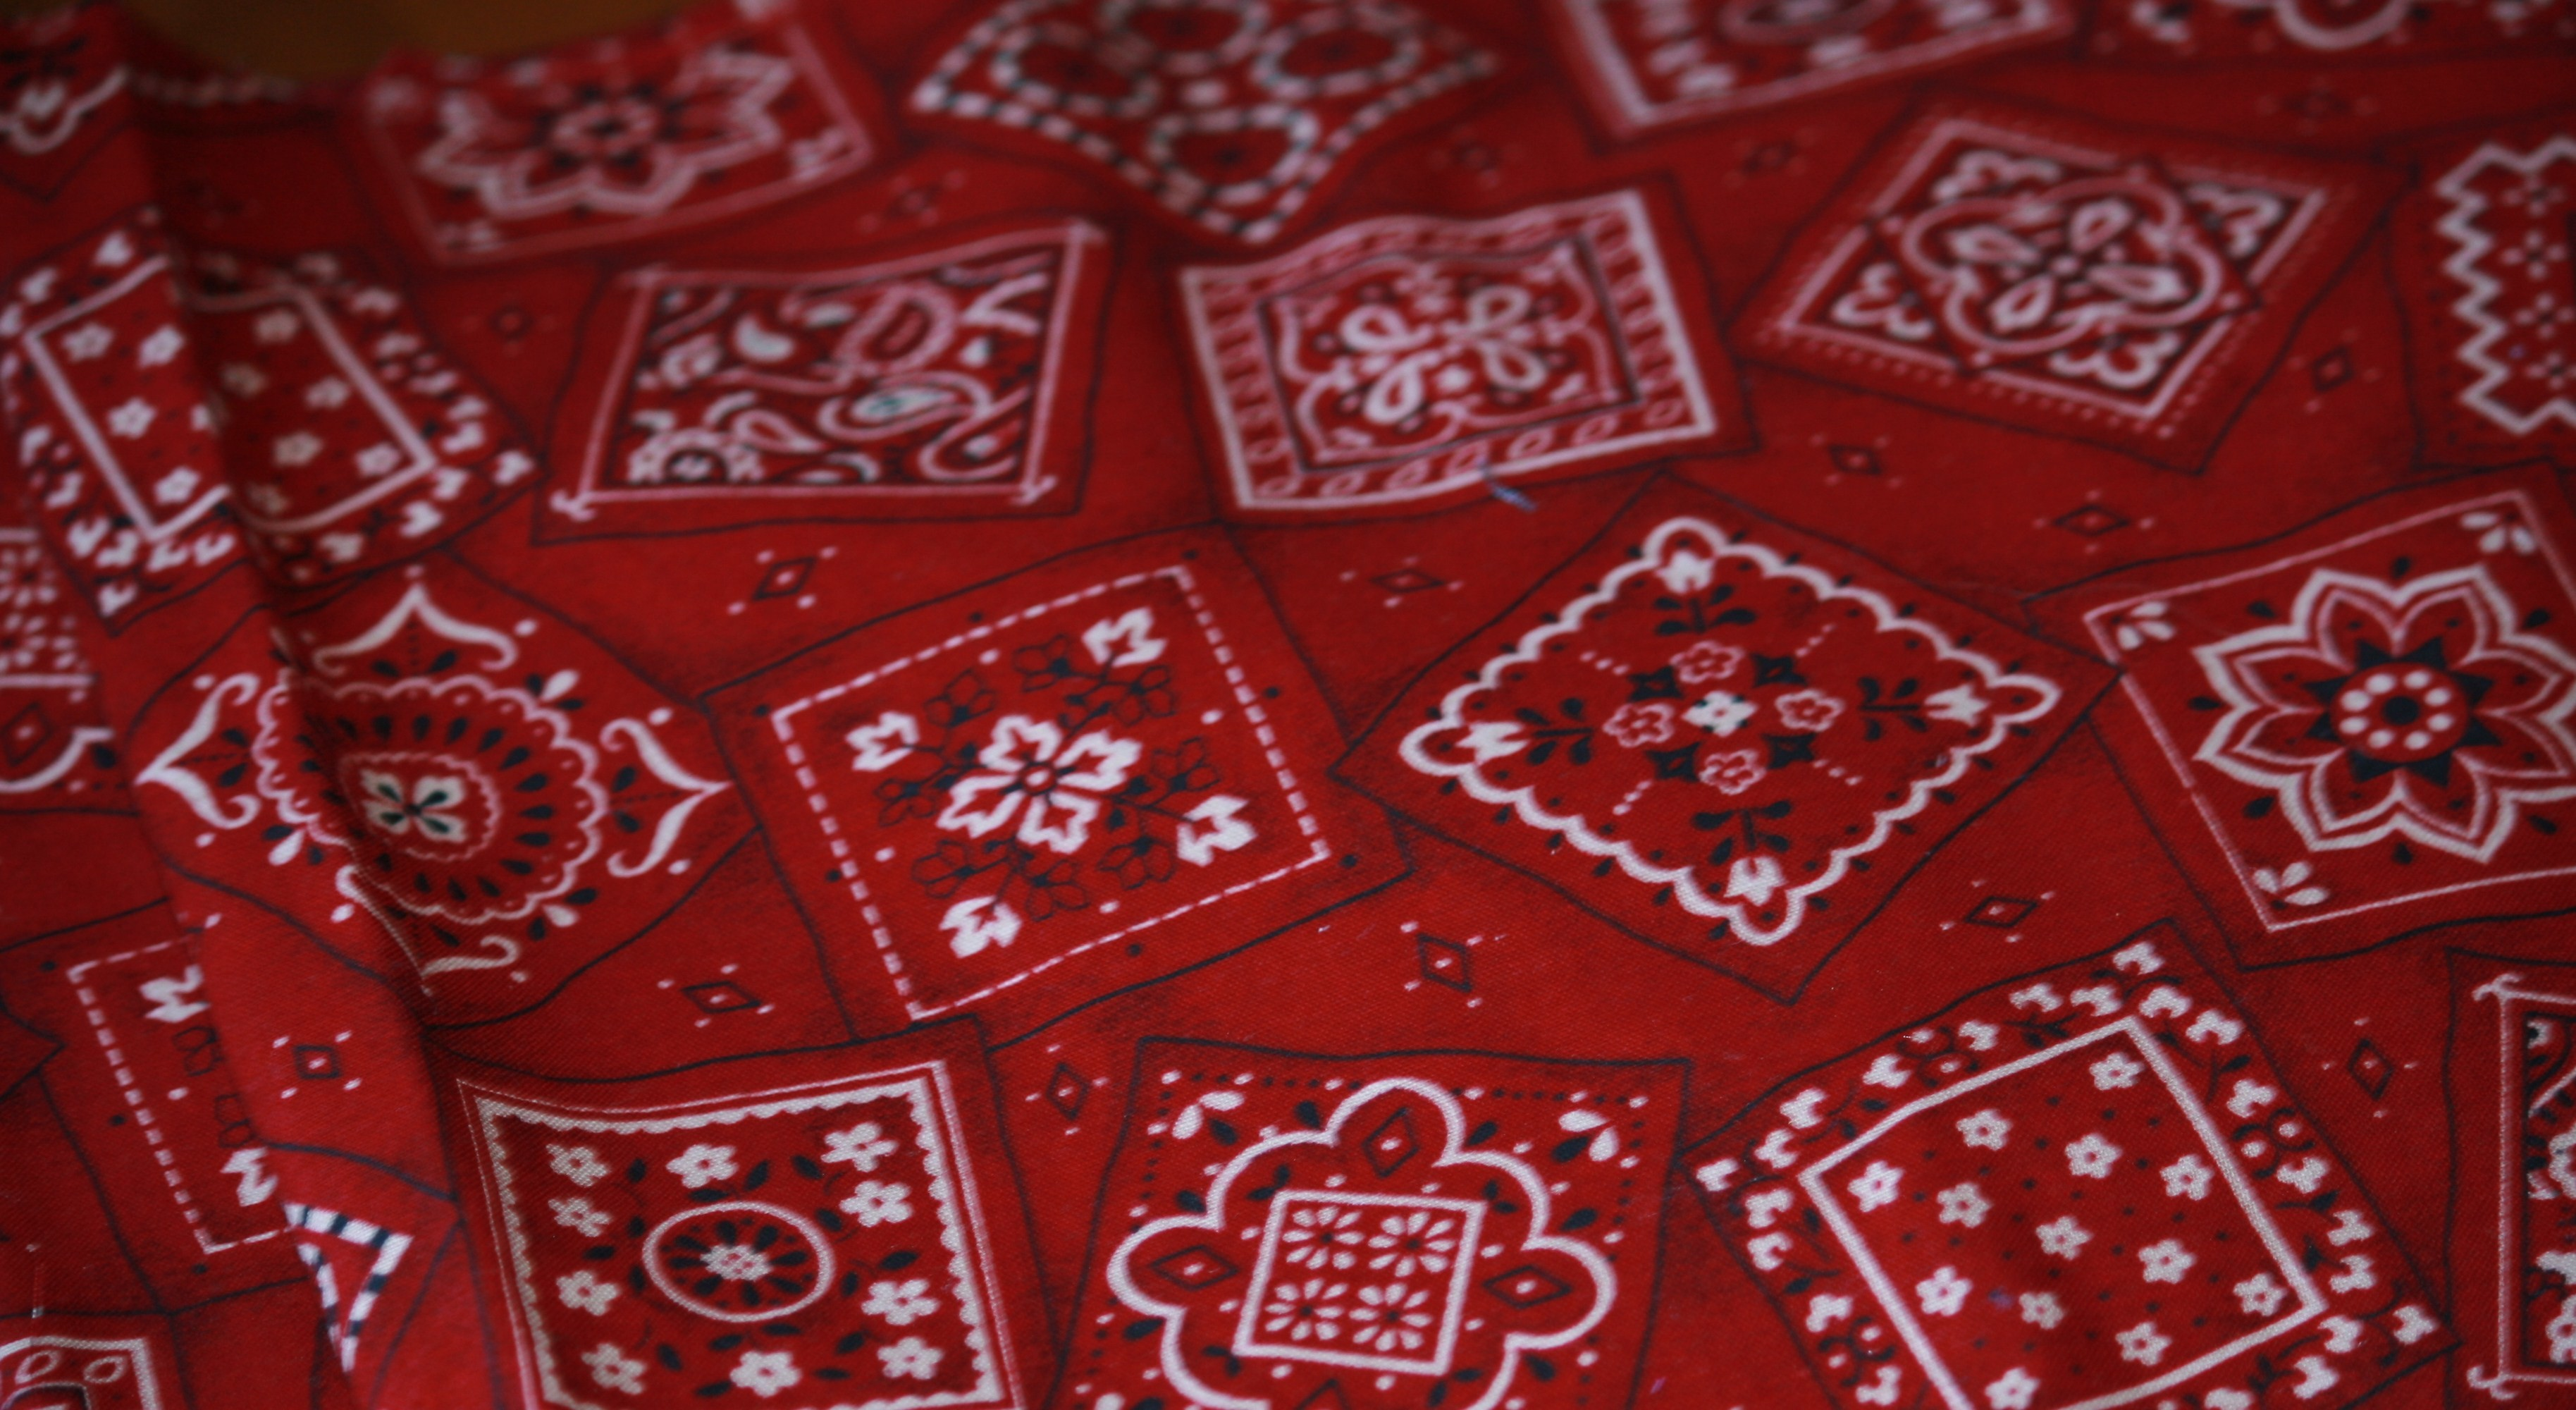 Res: 3655x2000, Red bandana with cream